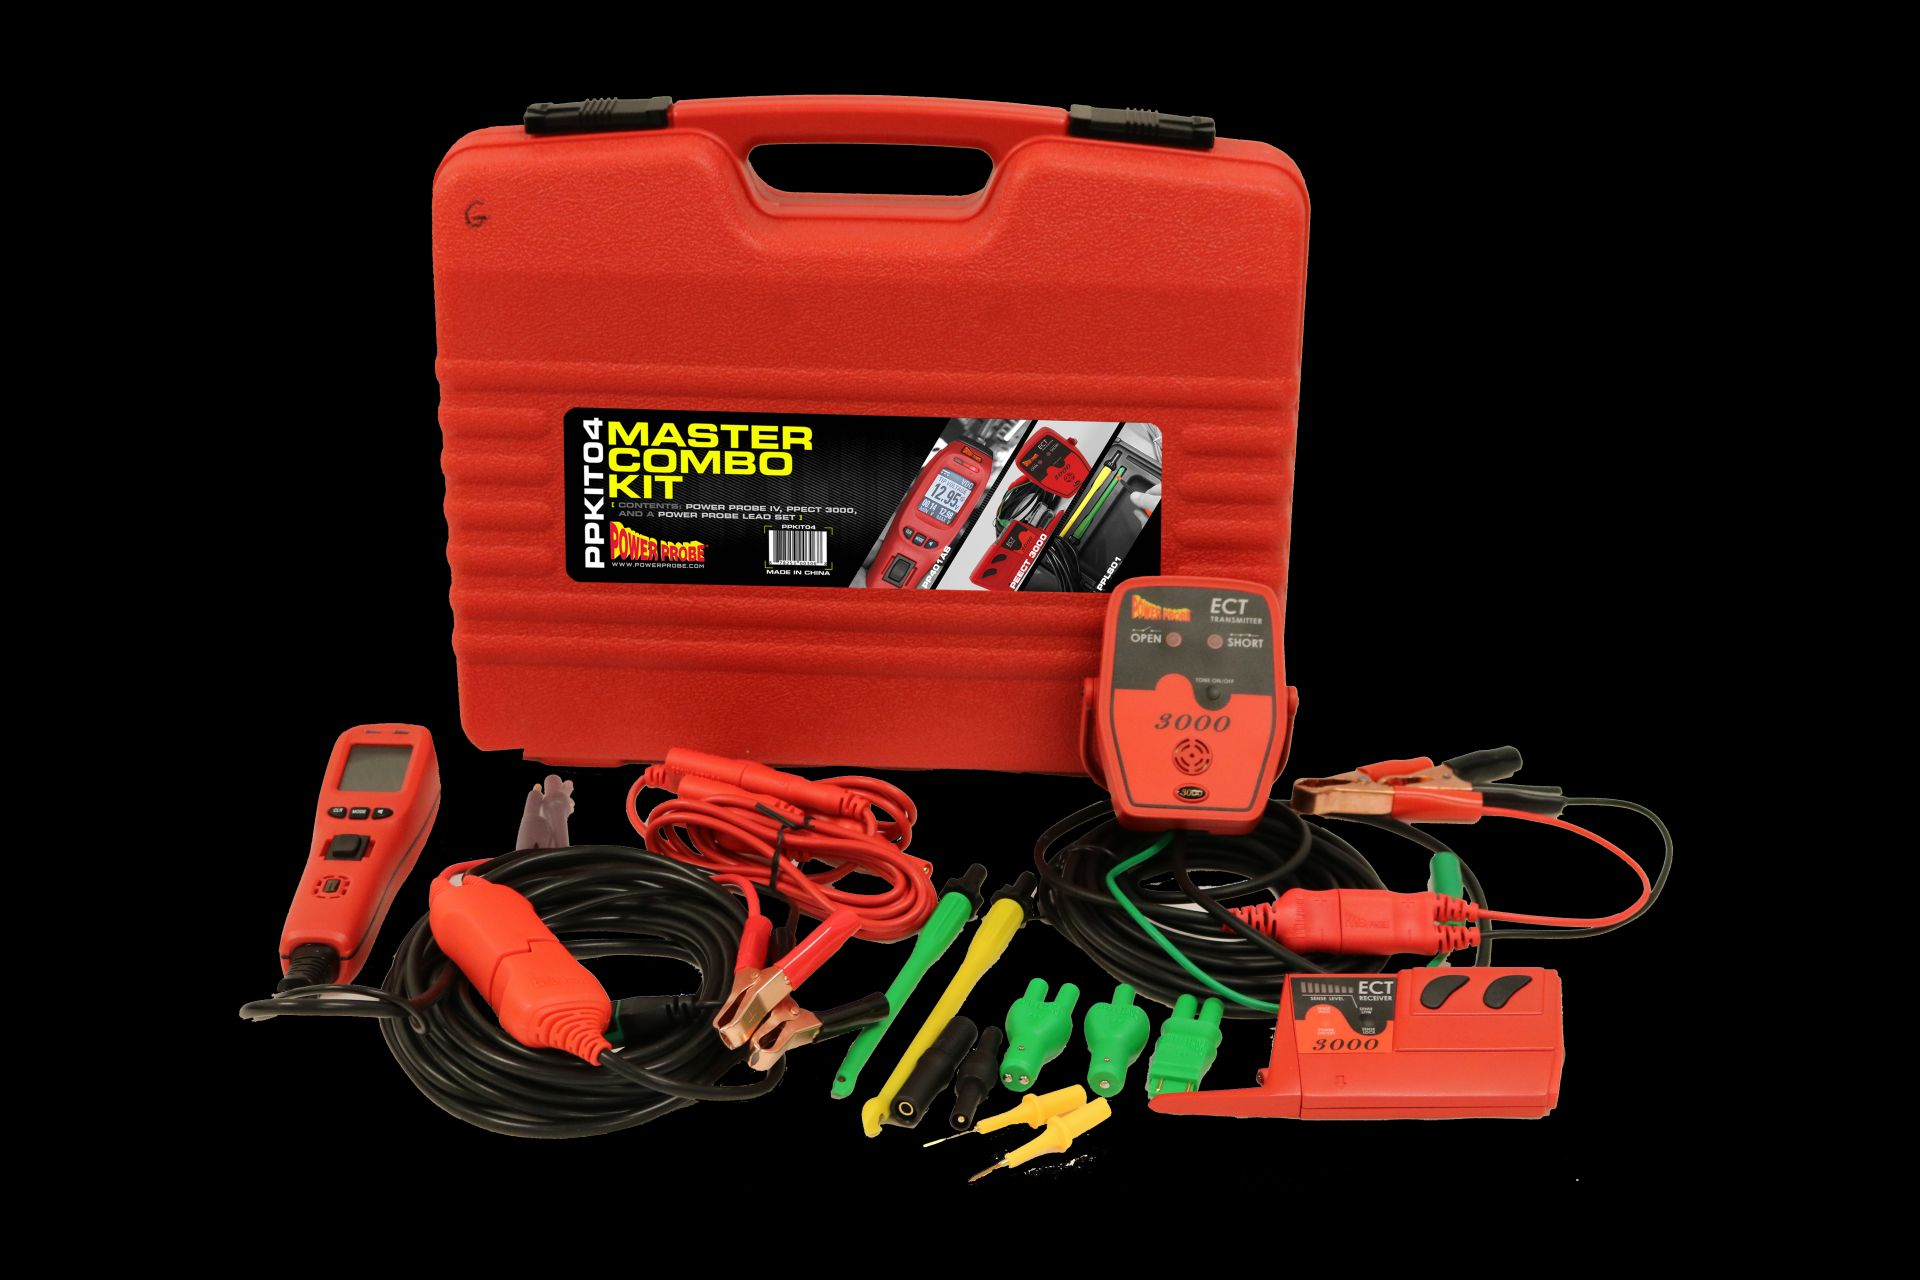 Power Probe Introduces Master Combo Kit